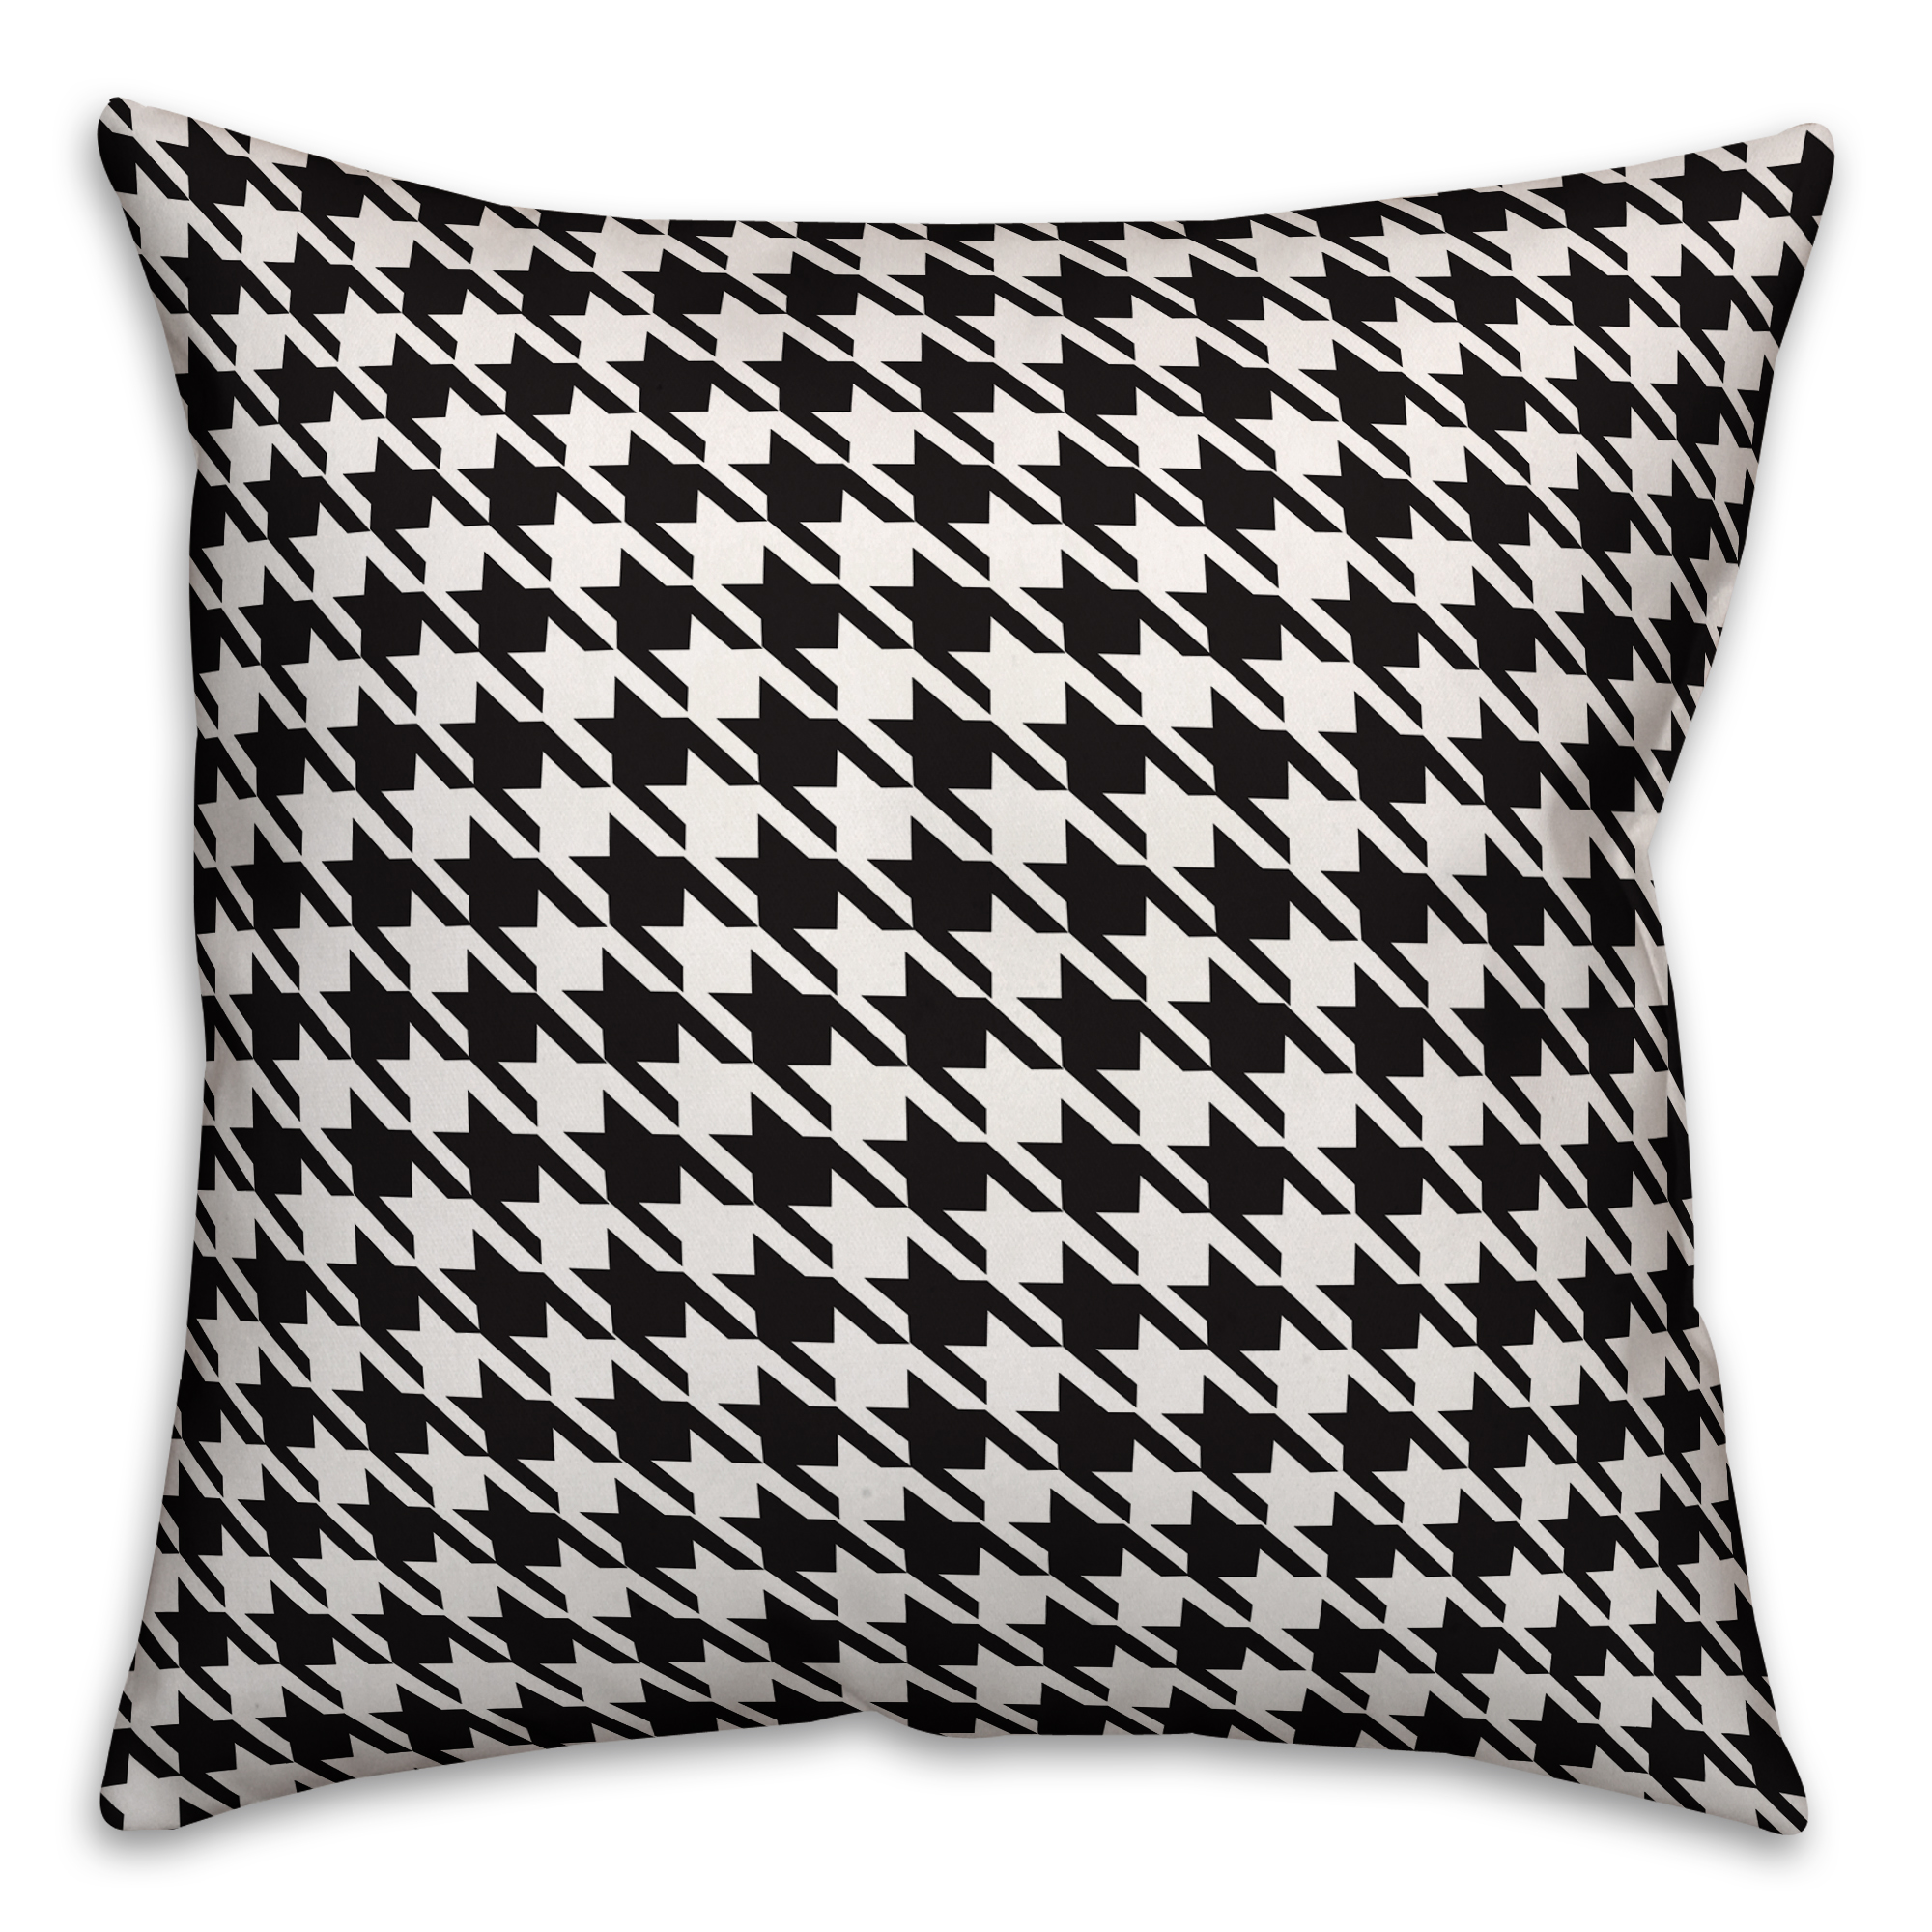 Black and White Houndstooth Plaid 18x18 Spun Poly Pillow